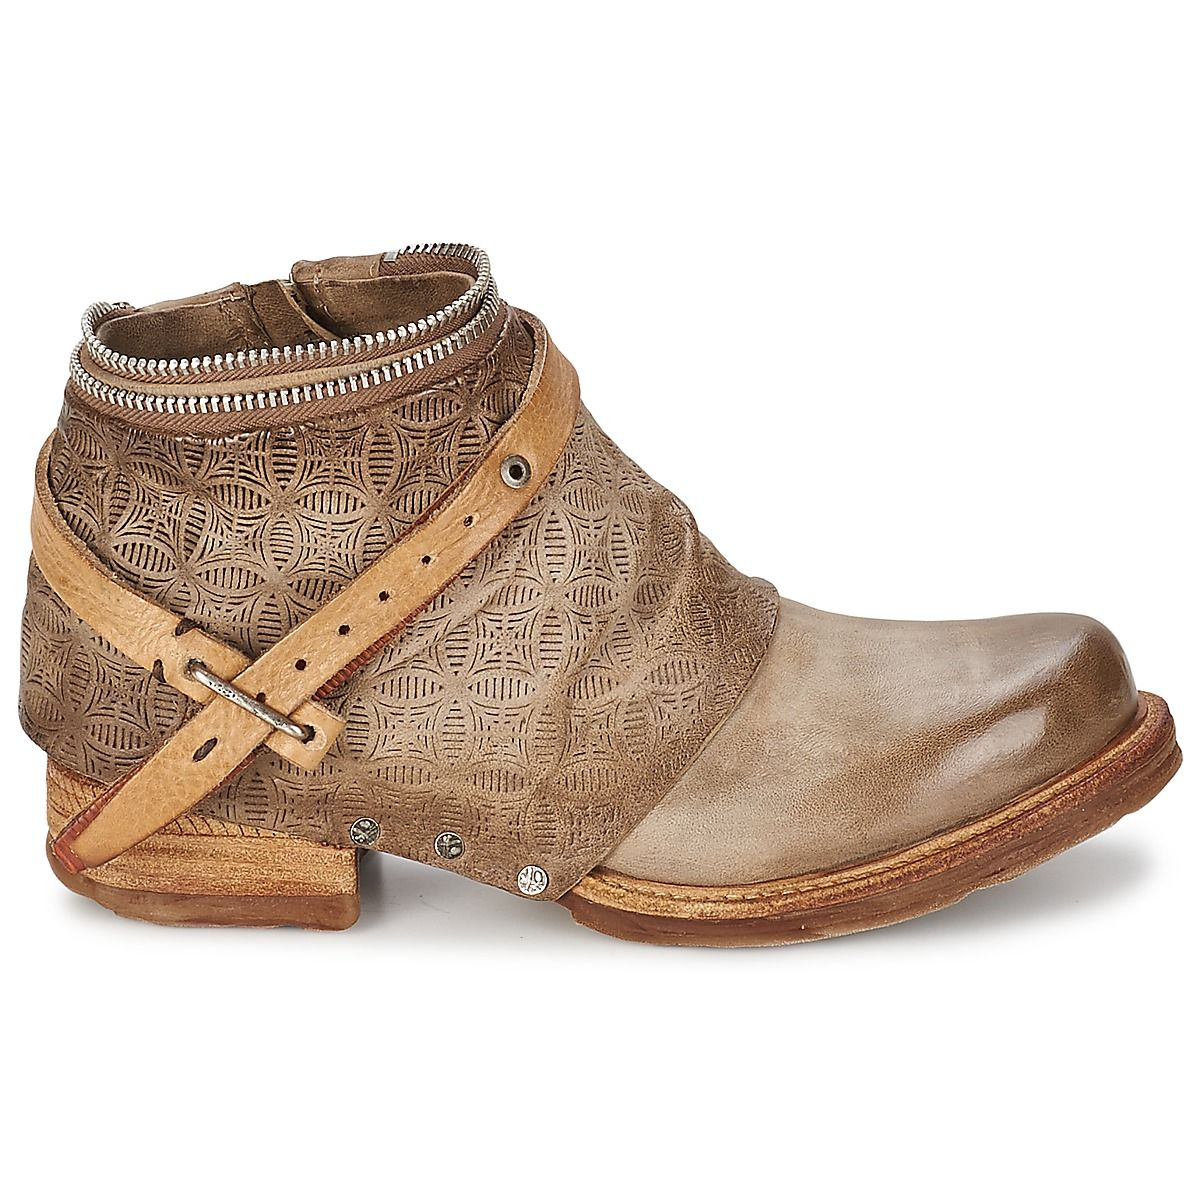 From The New Collection By Airstep Rubbersole Shoes Boots